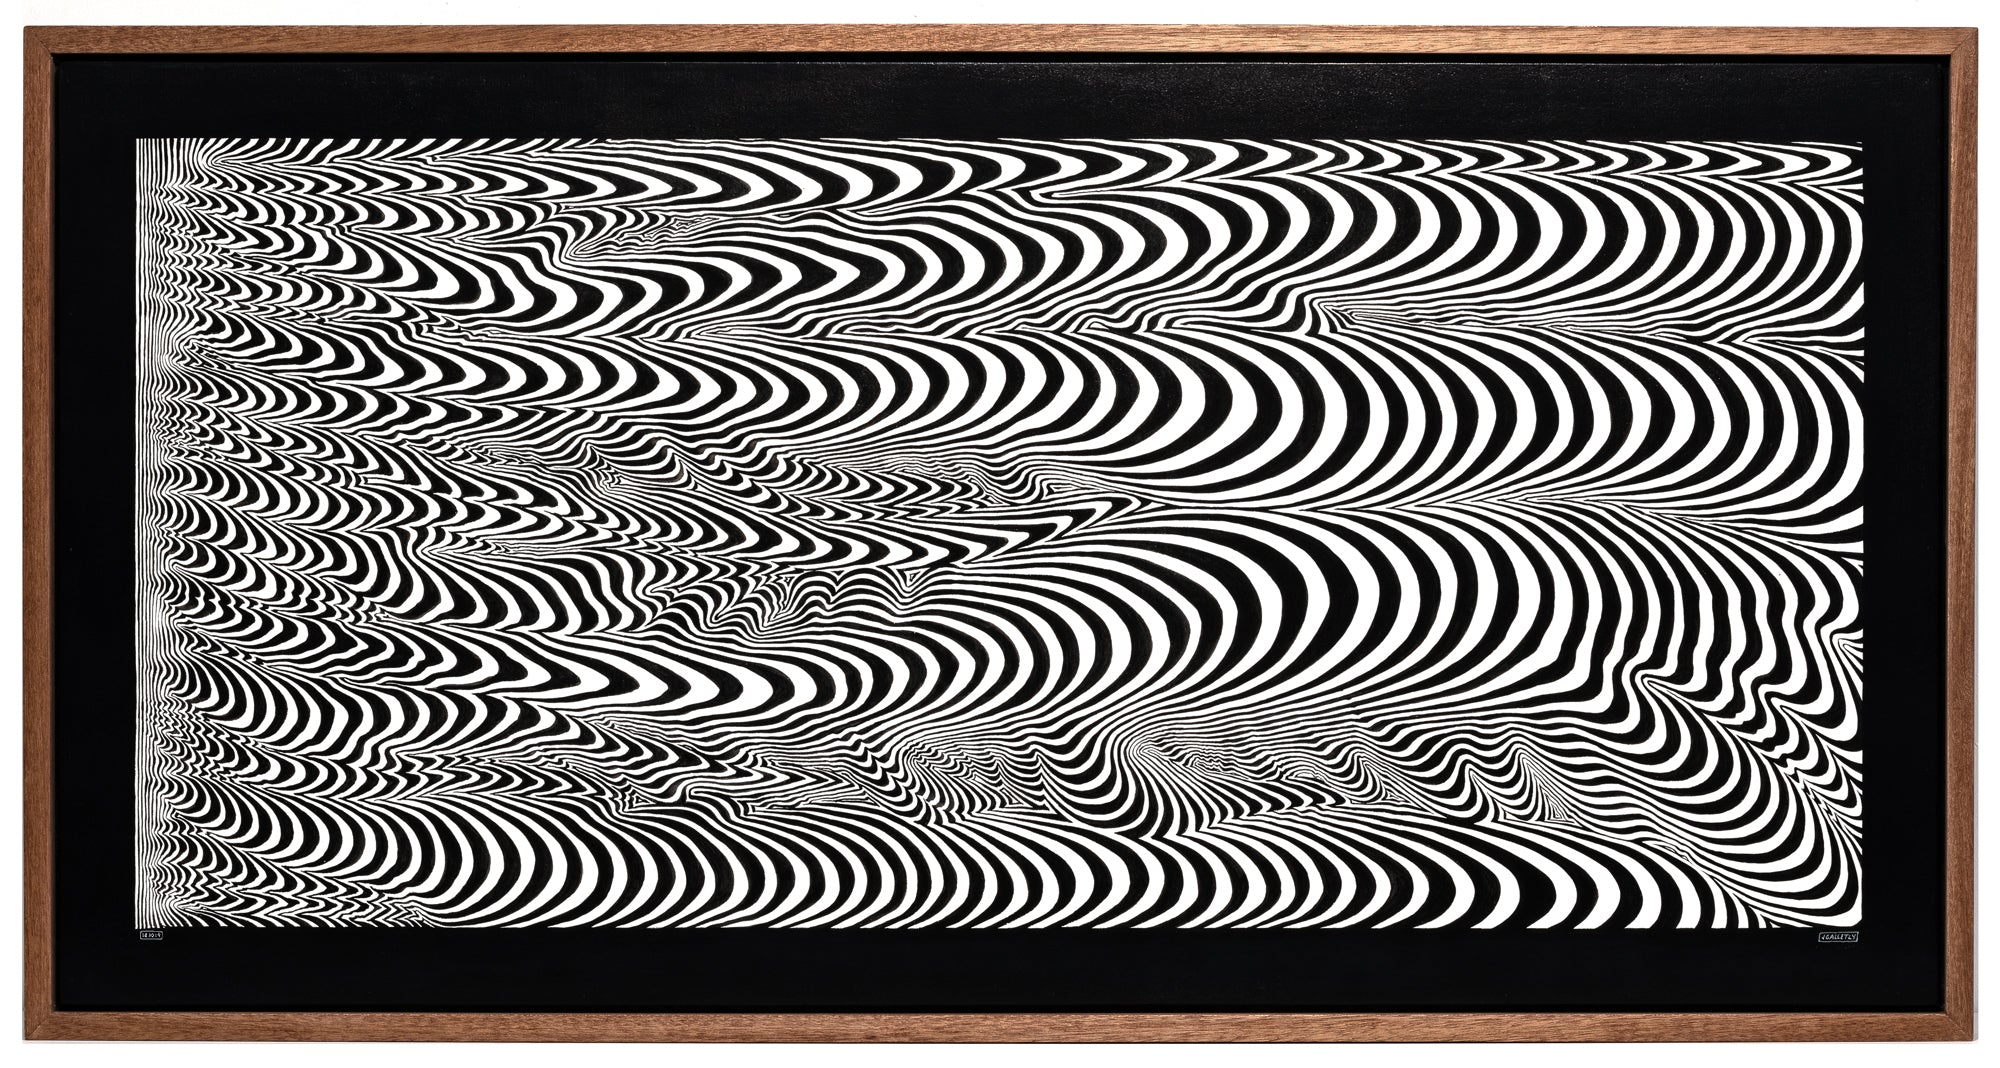 Josh Galletly Art, contemporary black and white line paintings, optical illuson psychedelic energy fields